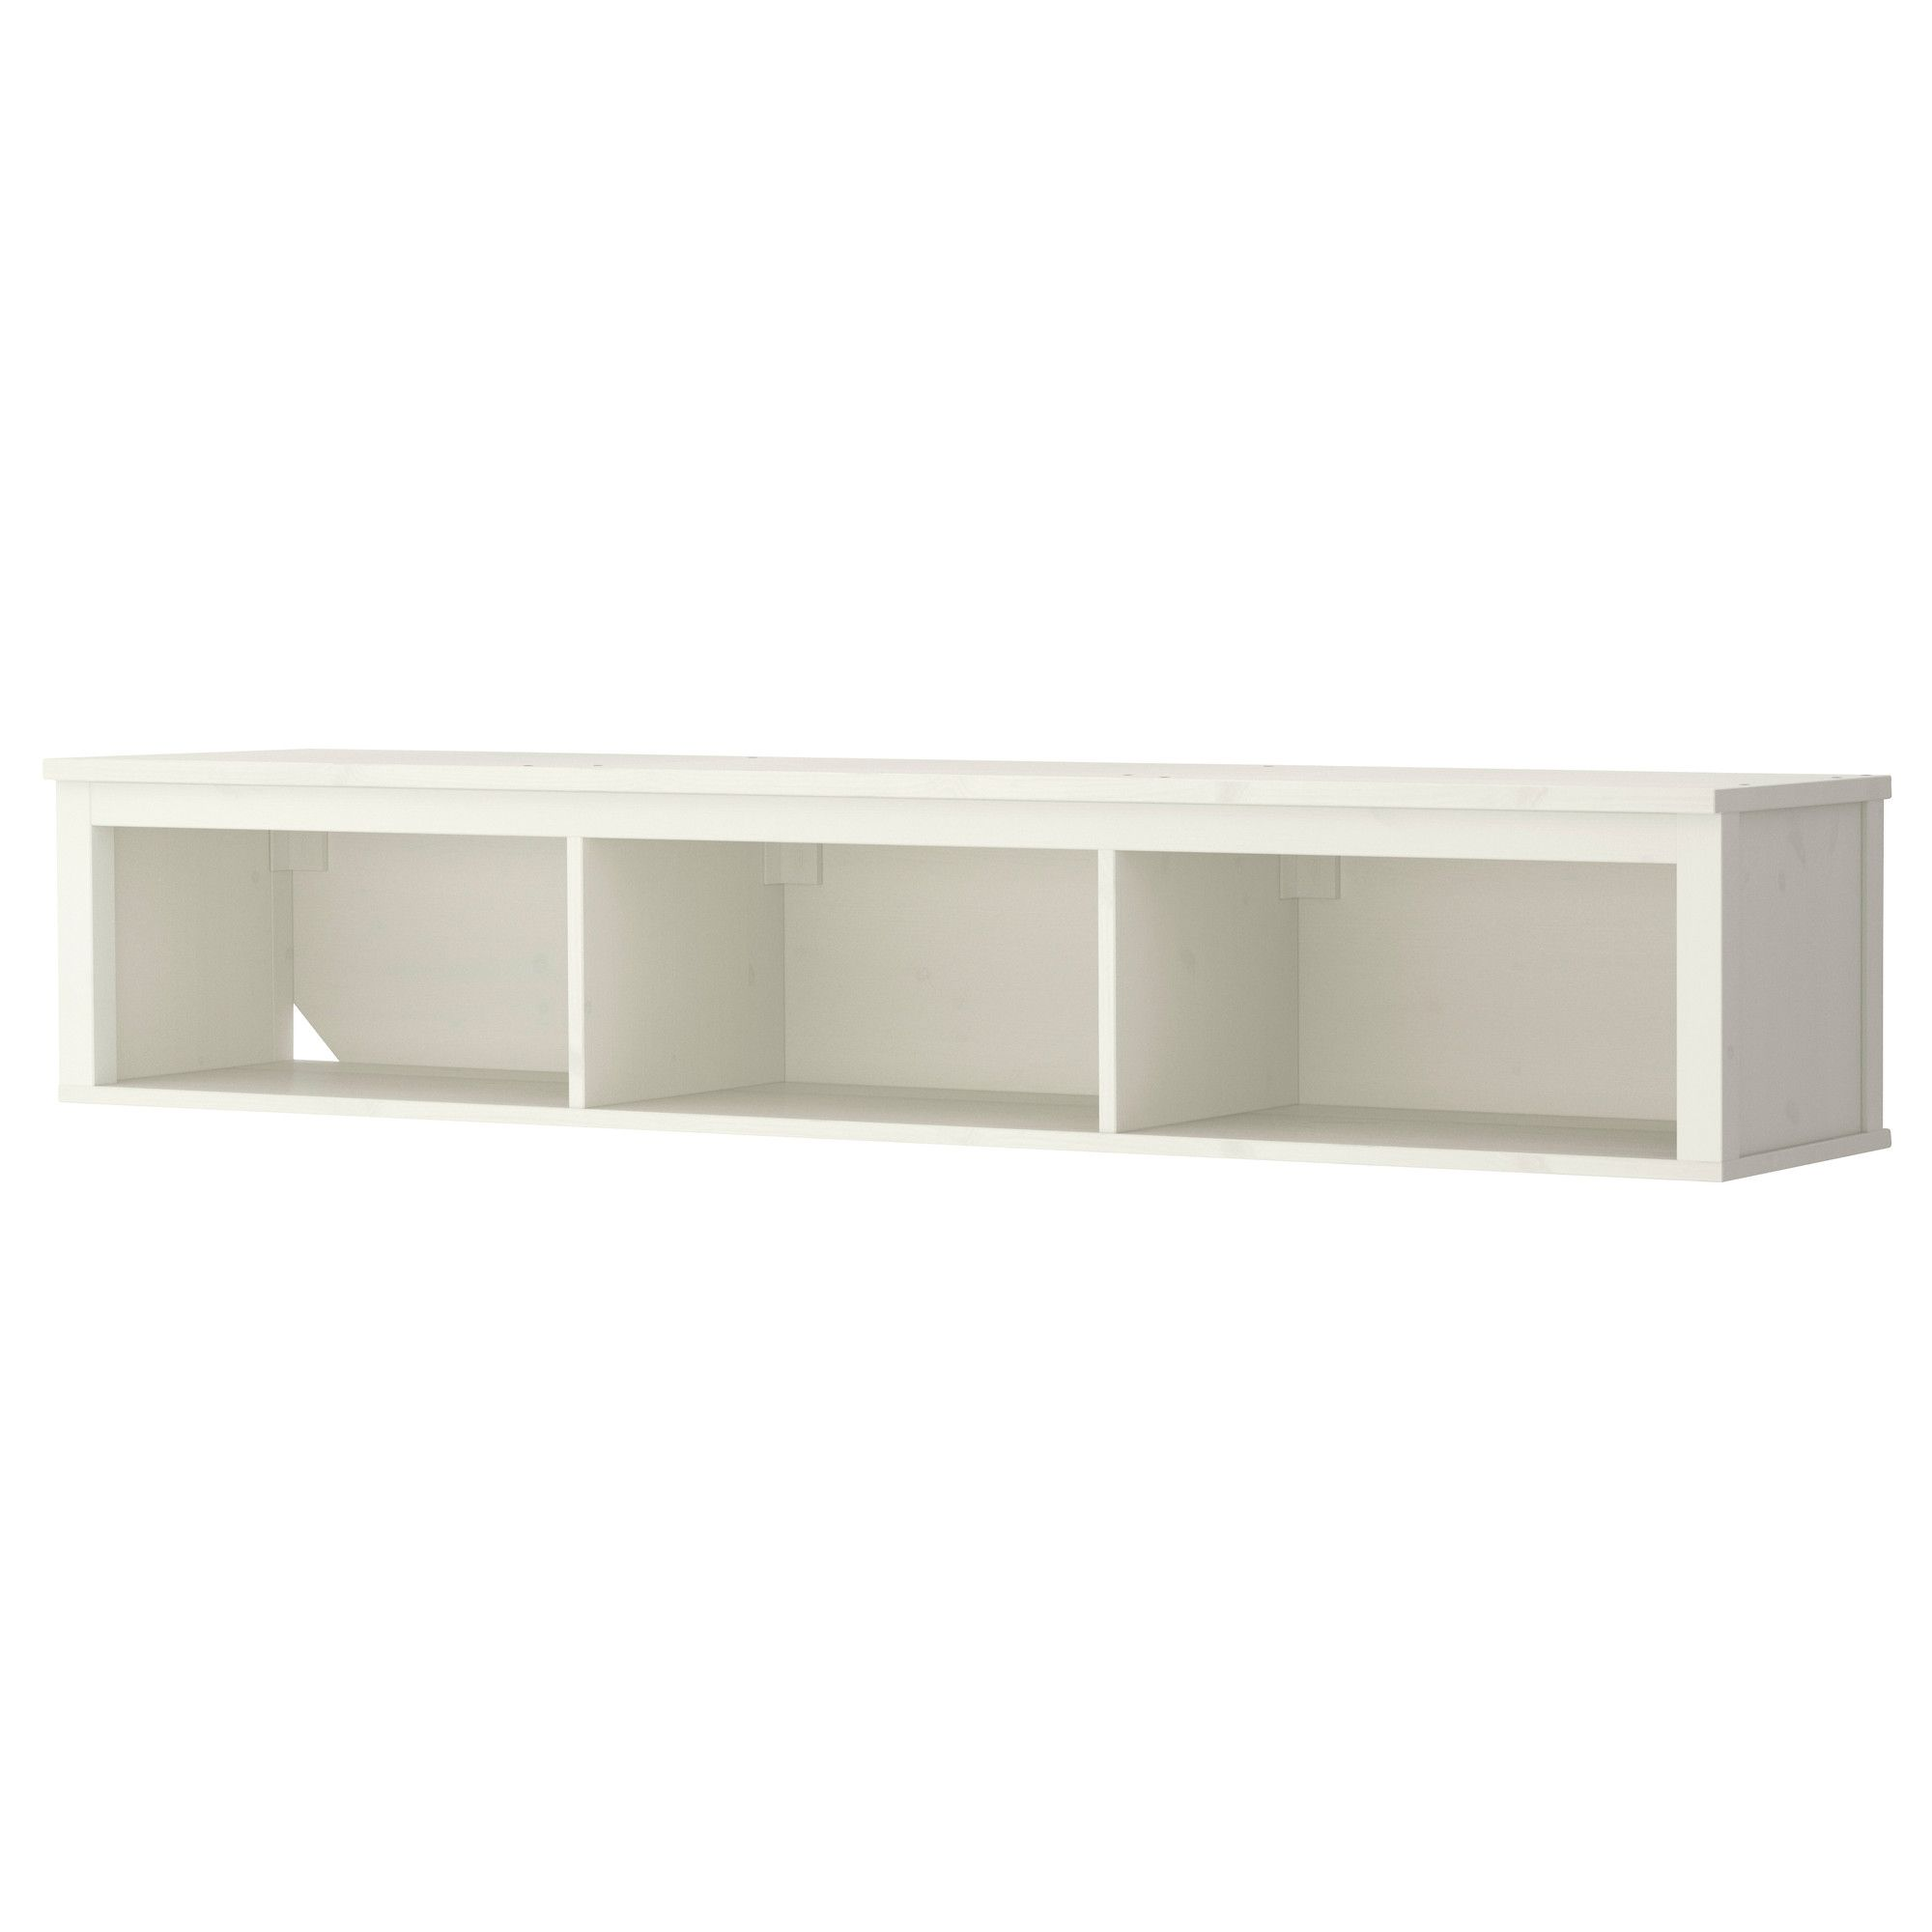 HEMNES Pó u0142ka u015bcienna bia u0142a bejca IKEA furniture Pinterest White stain, HEMNES and Low